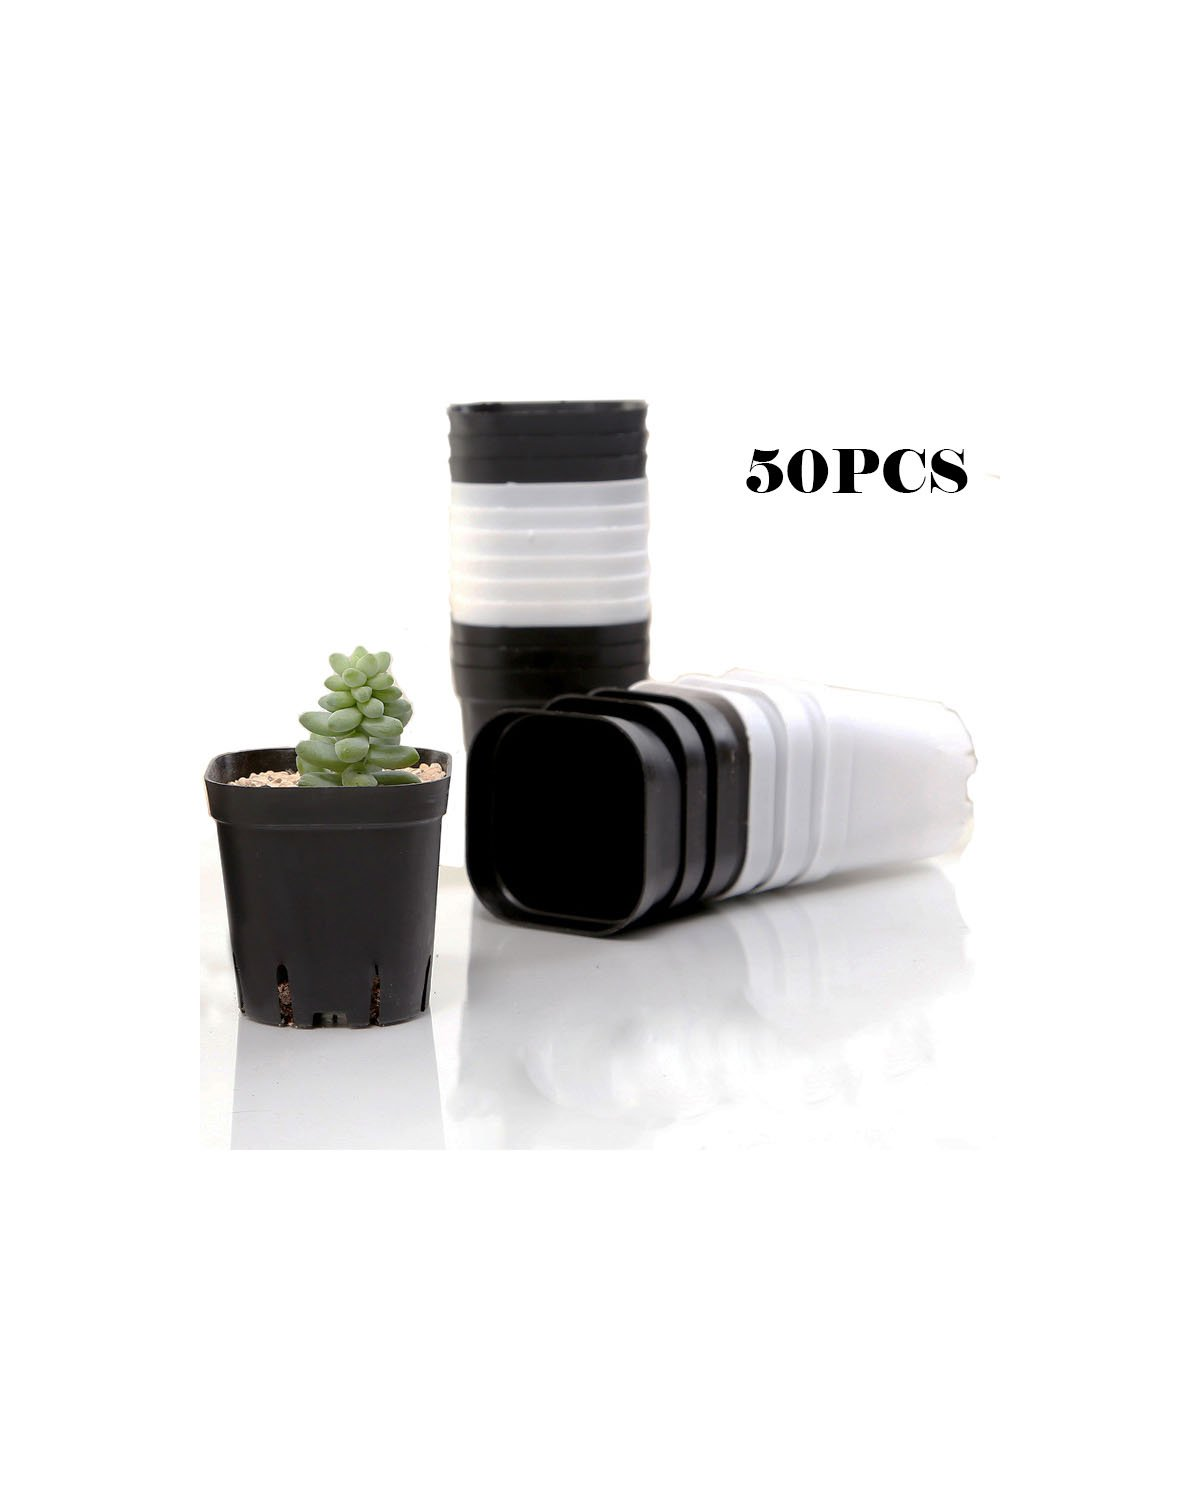 Finico 50pcs Square Nursery Pot /2.75'' Square for Seed Germination, Soil & Hydroponics, Planting Starter Plugs